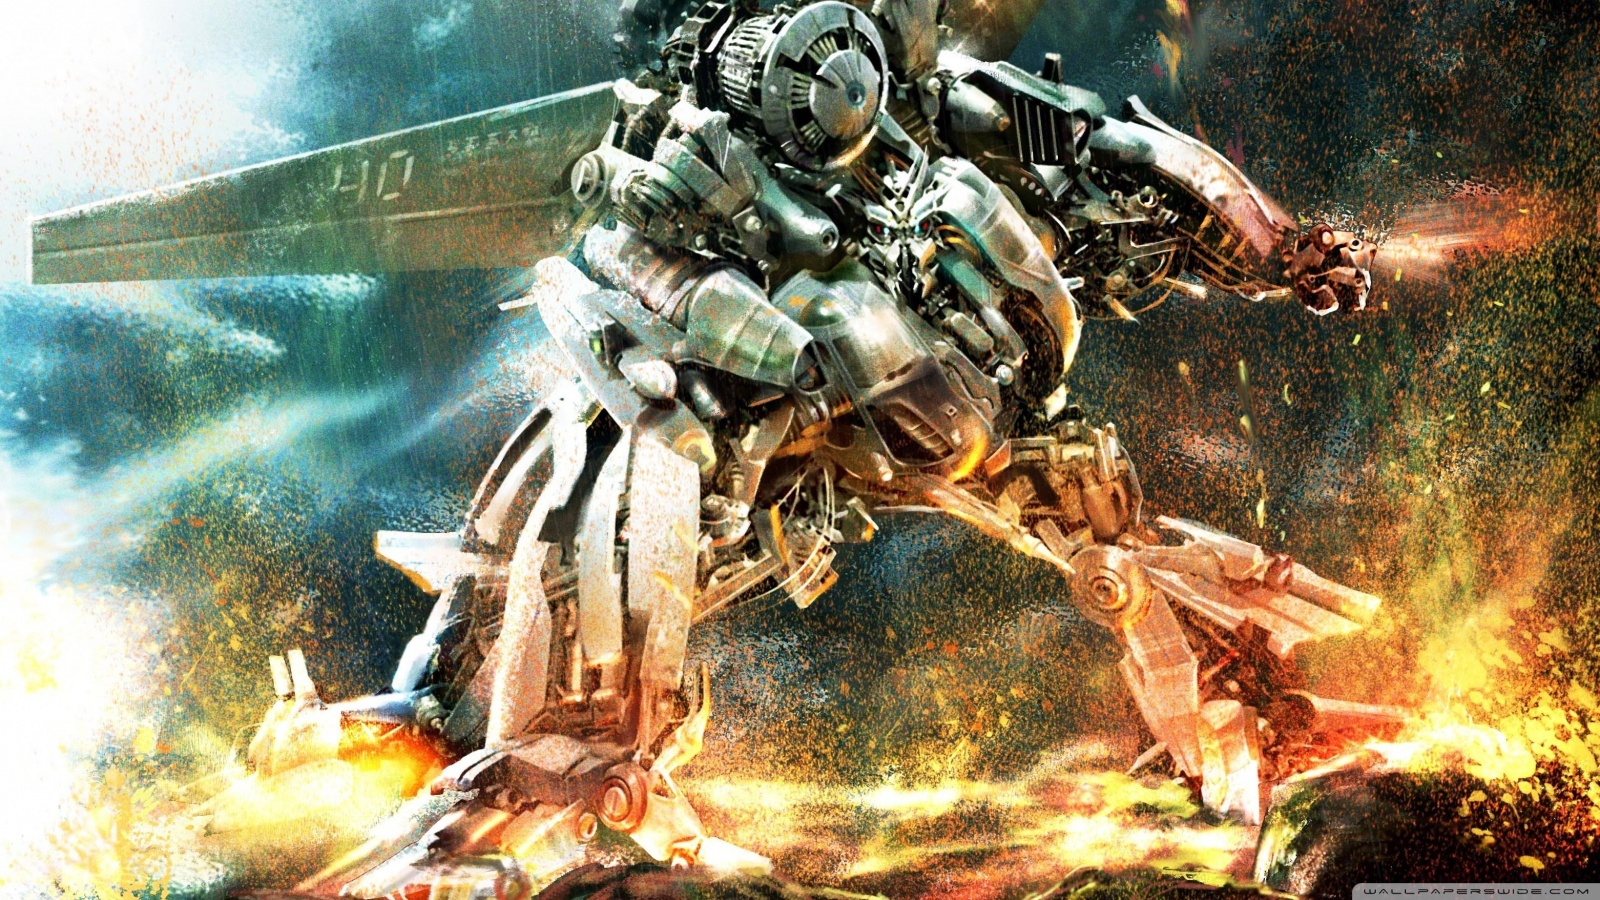 transformers_robot_war-wallpaper-1600x900